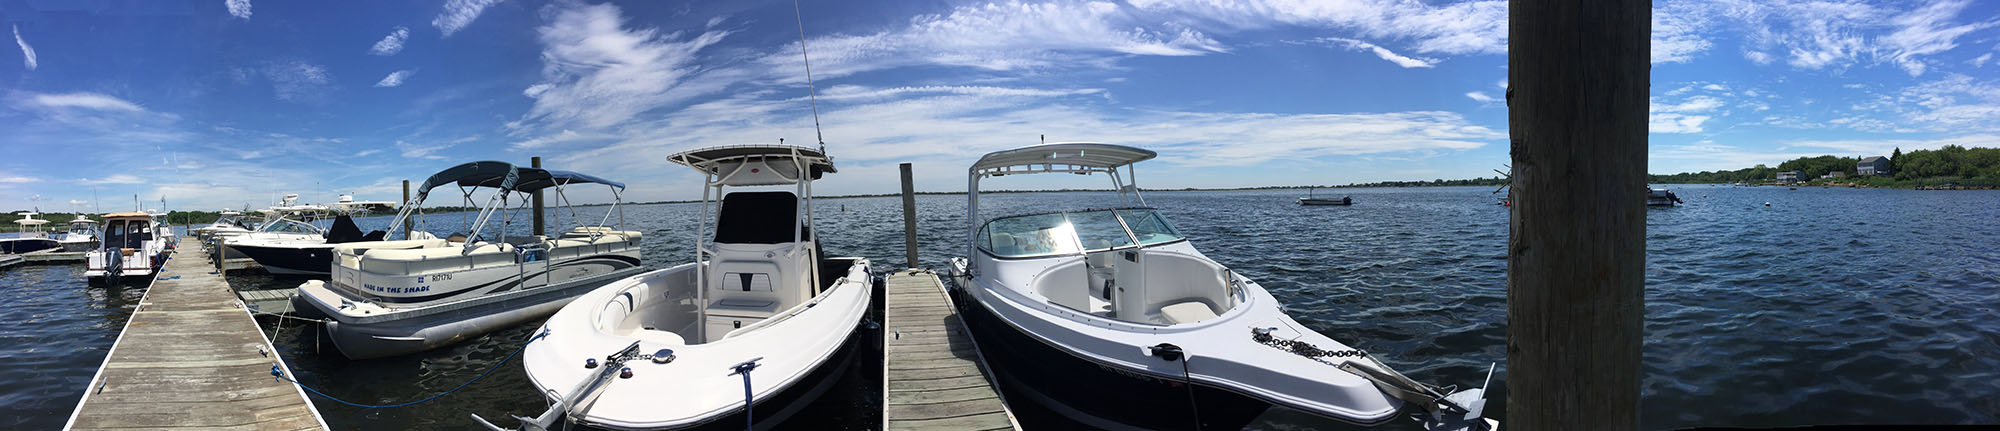 Boat yard services in Southern Rhode Island